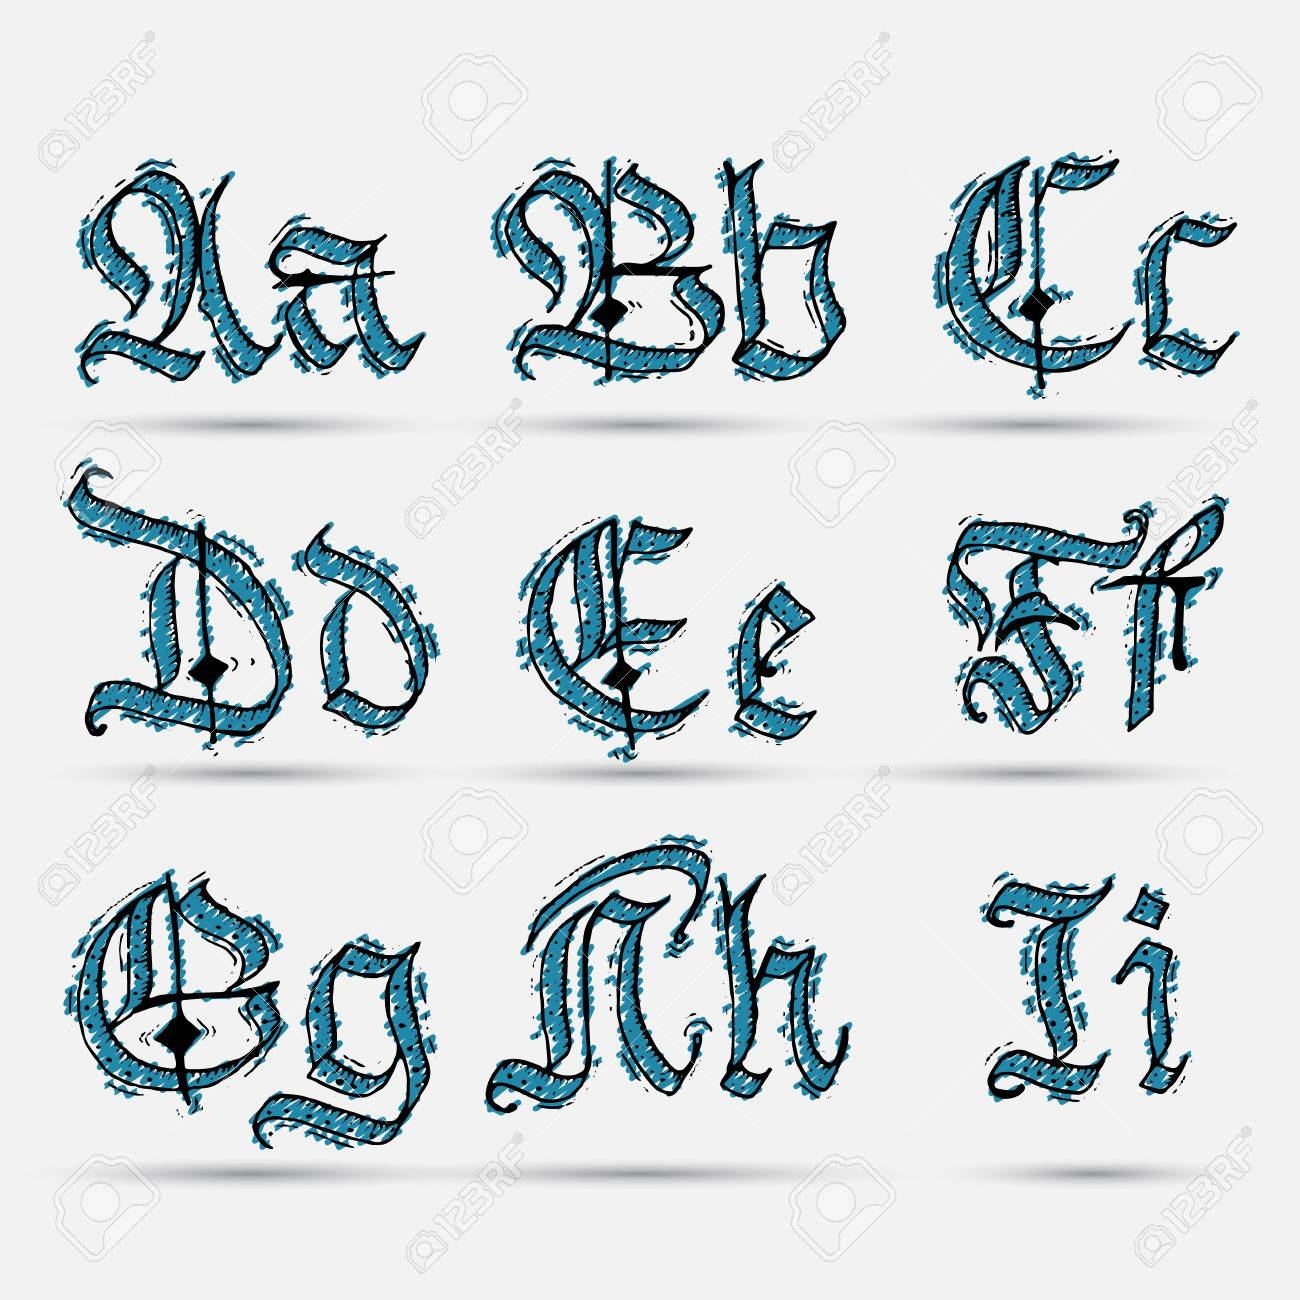 Set Gothic Abc Handmade Can Be Used To Design Greeting Cards